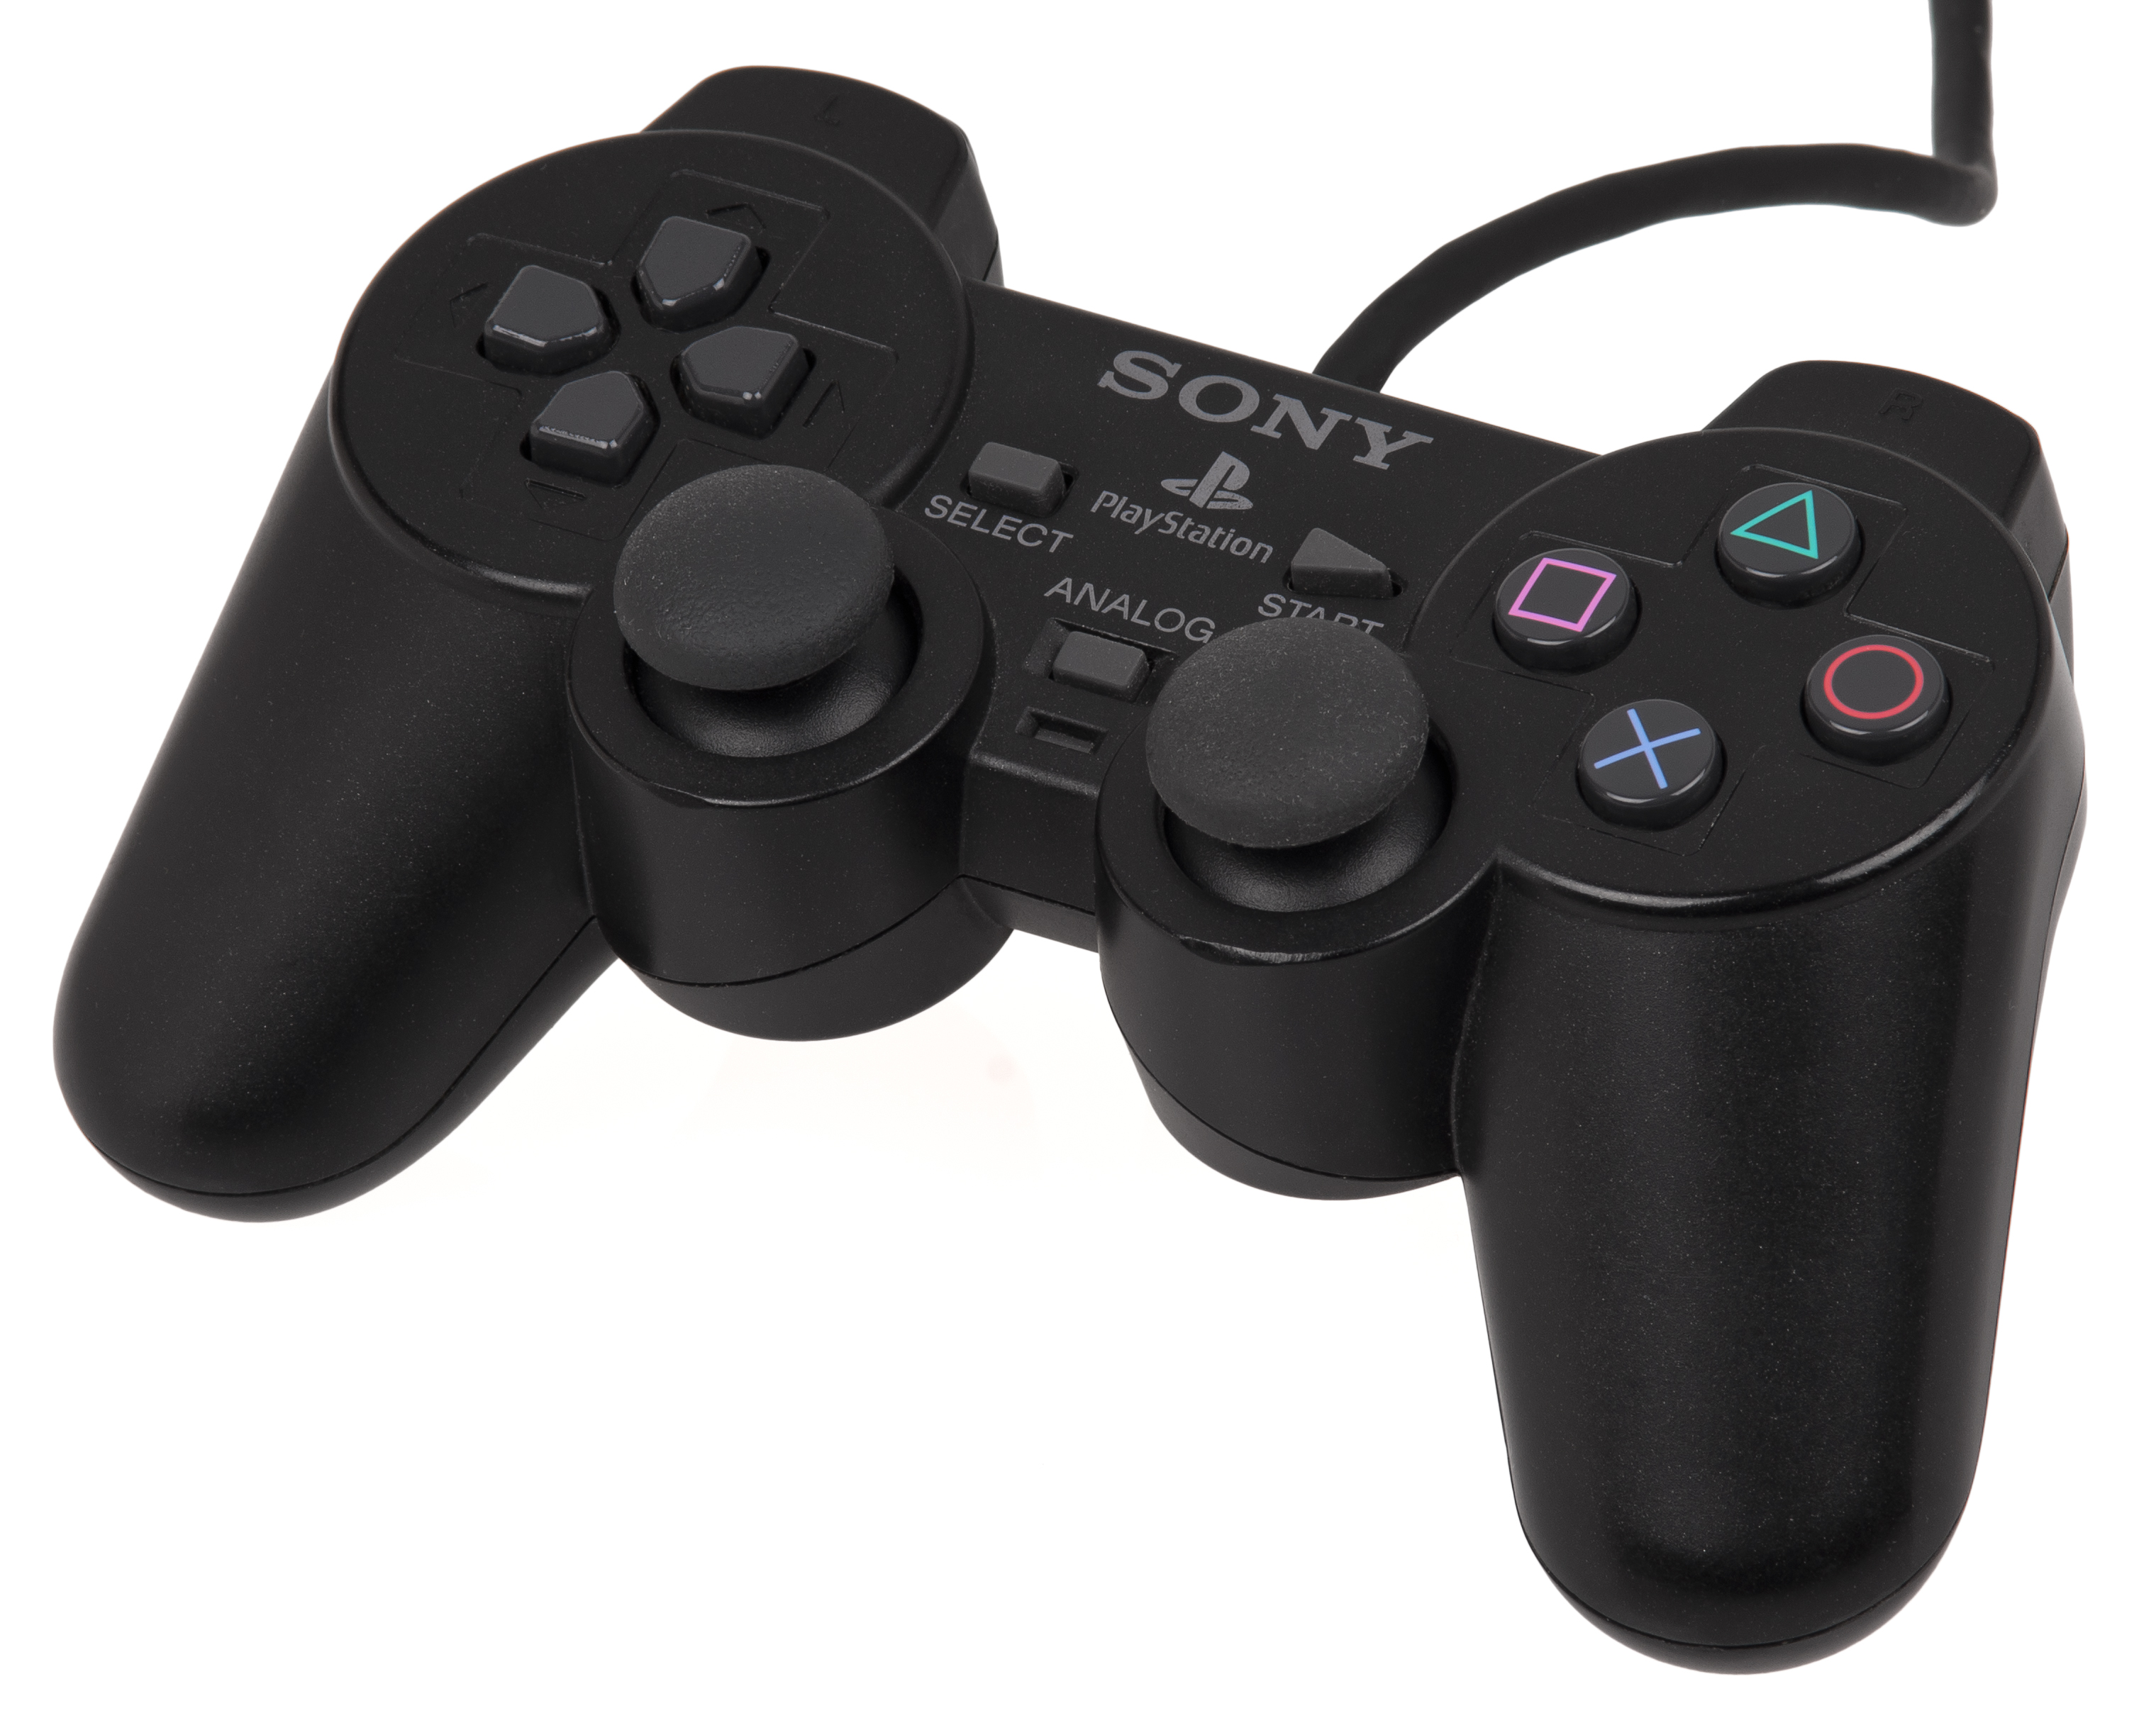 PS2 joysticks\'s dpad up/down/left/right are not mapped/detected in ...